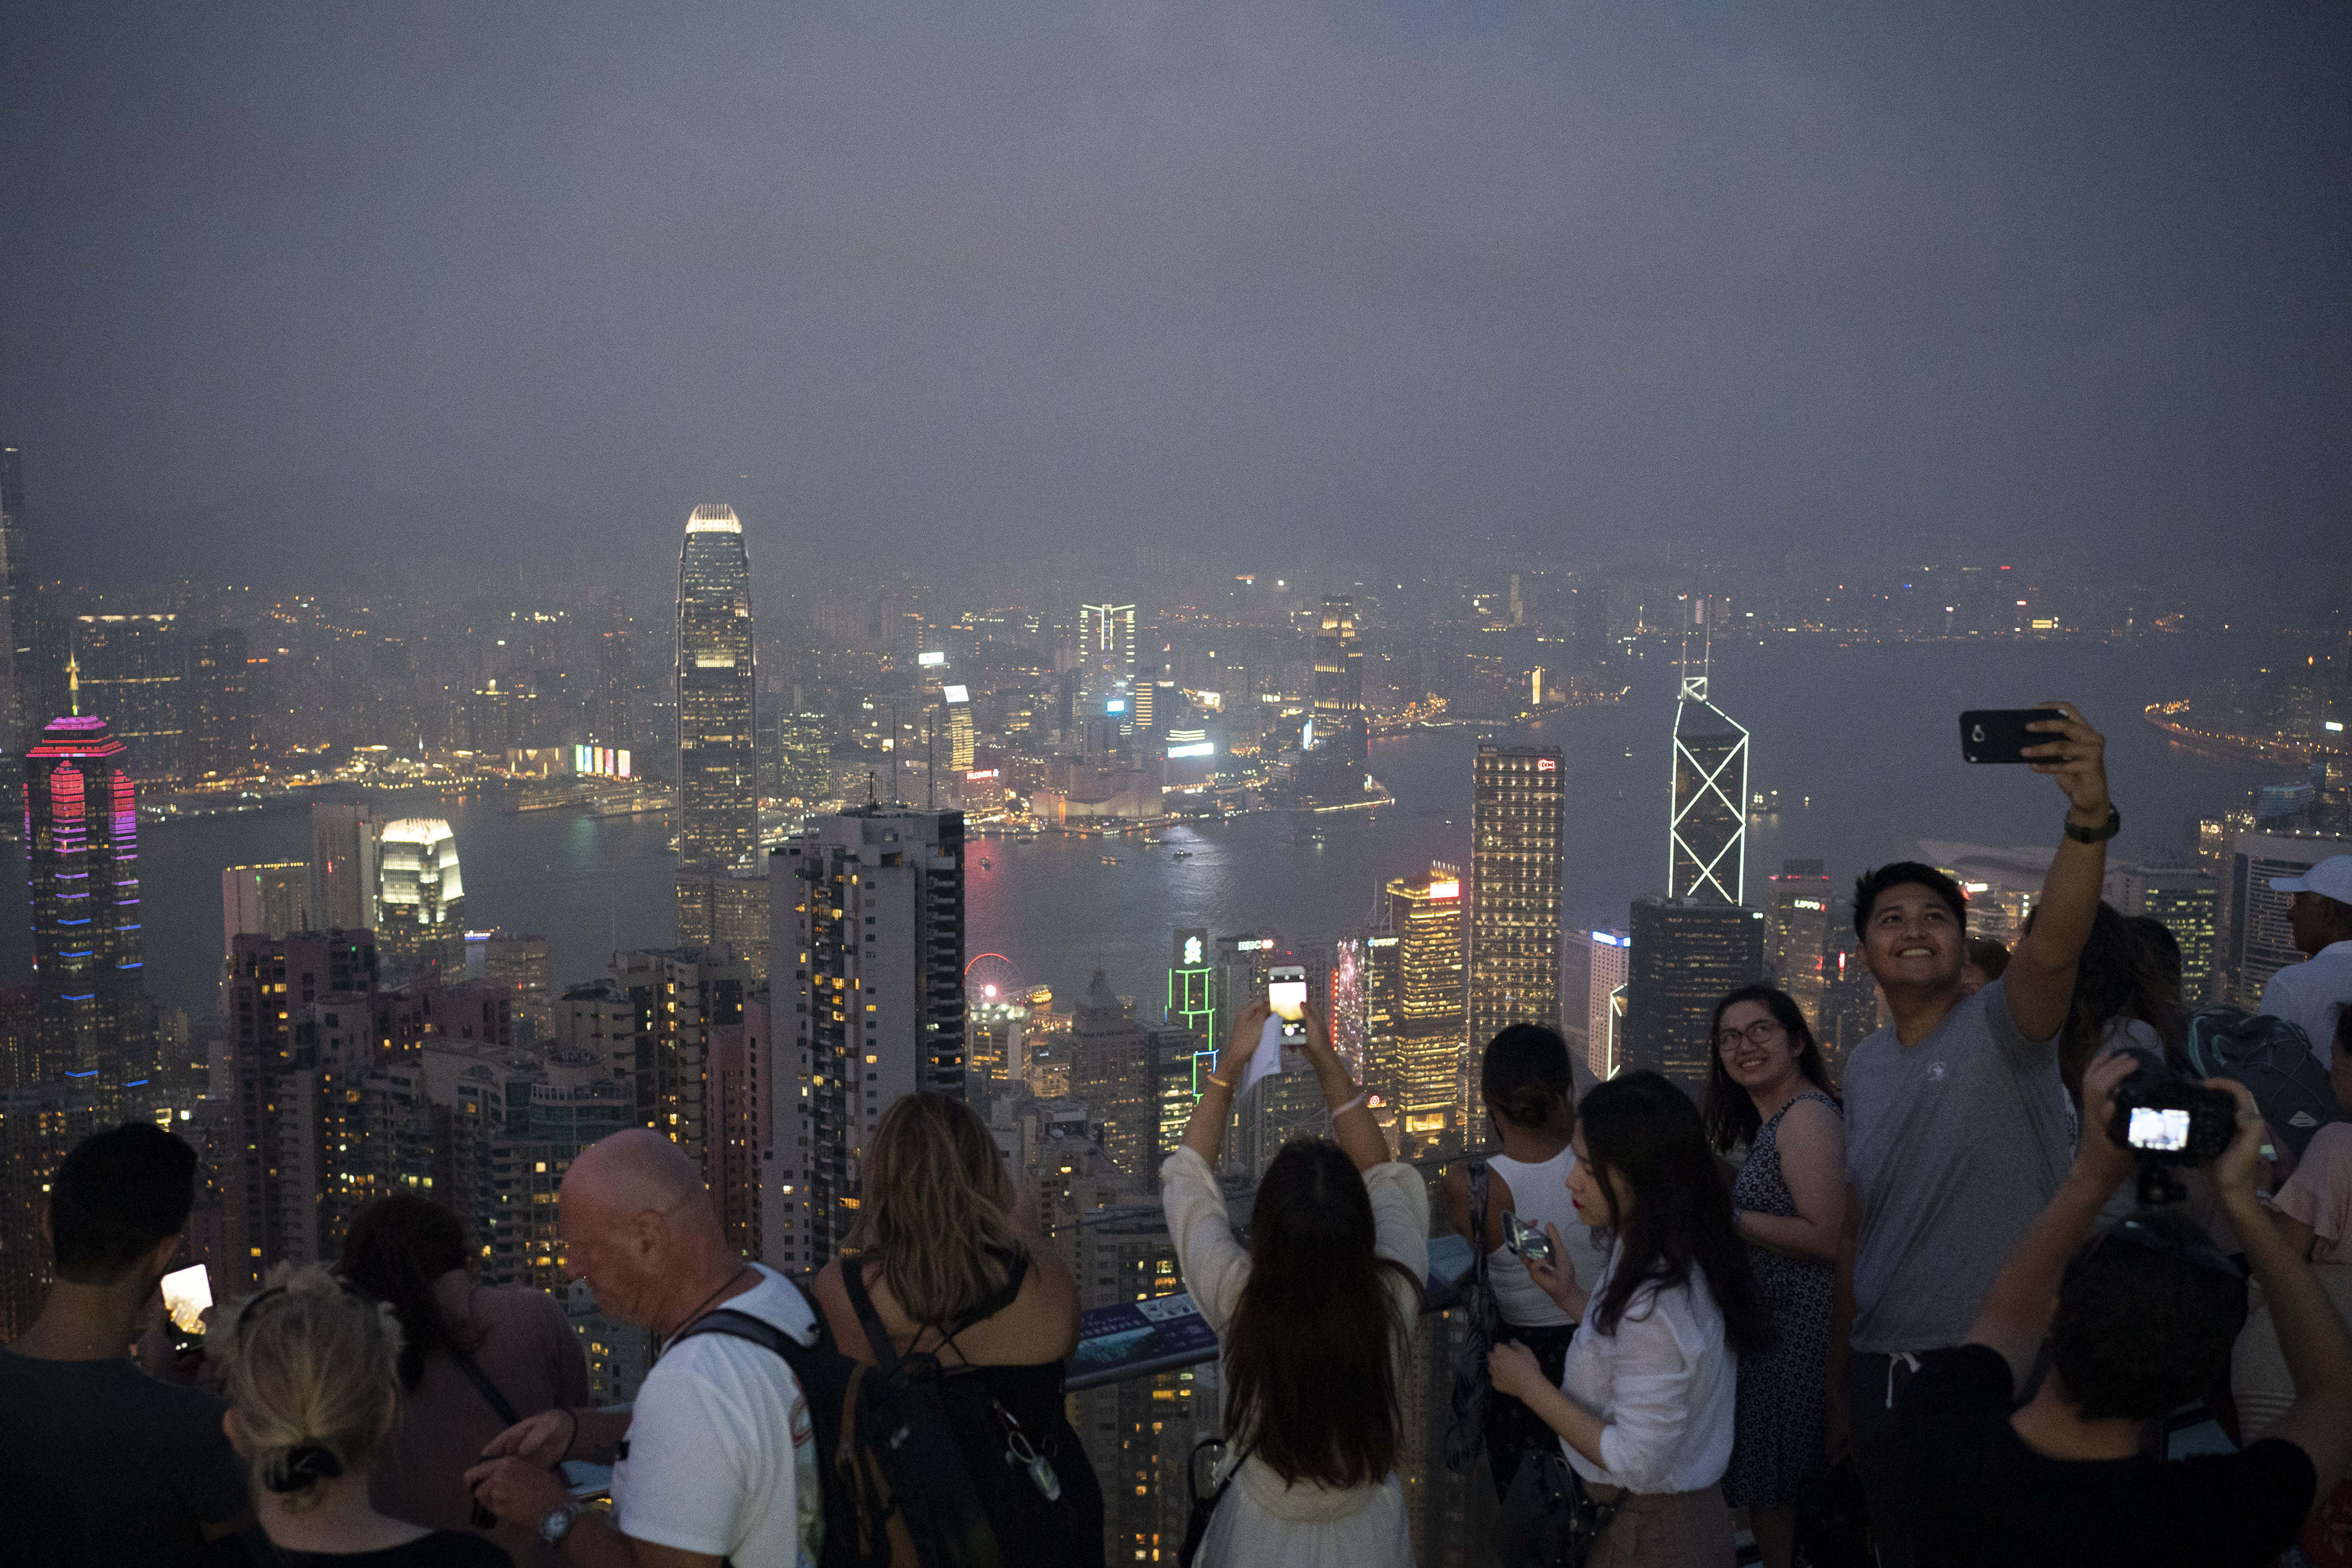 In this Oct. 9, 2019 photo, tourists take photos in a foggy evening at the Victoria Peak in Hong Kong.